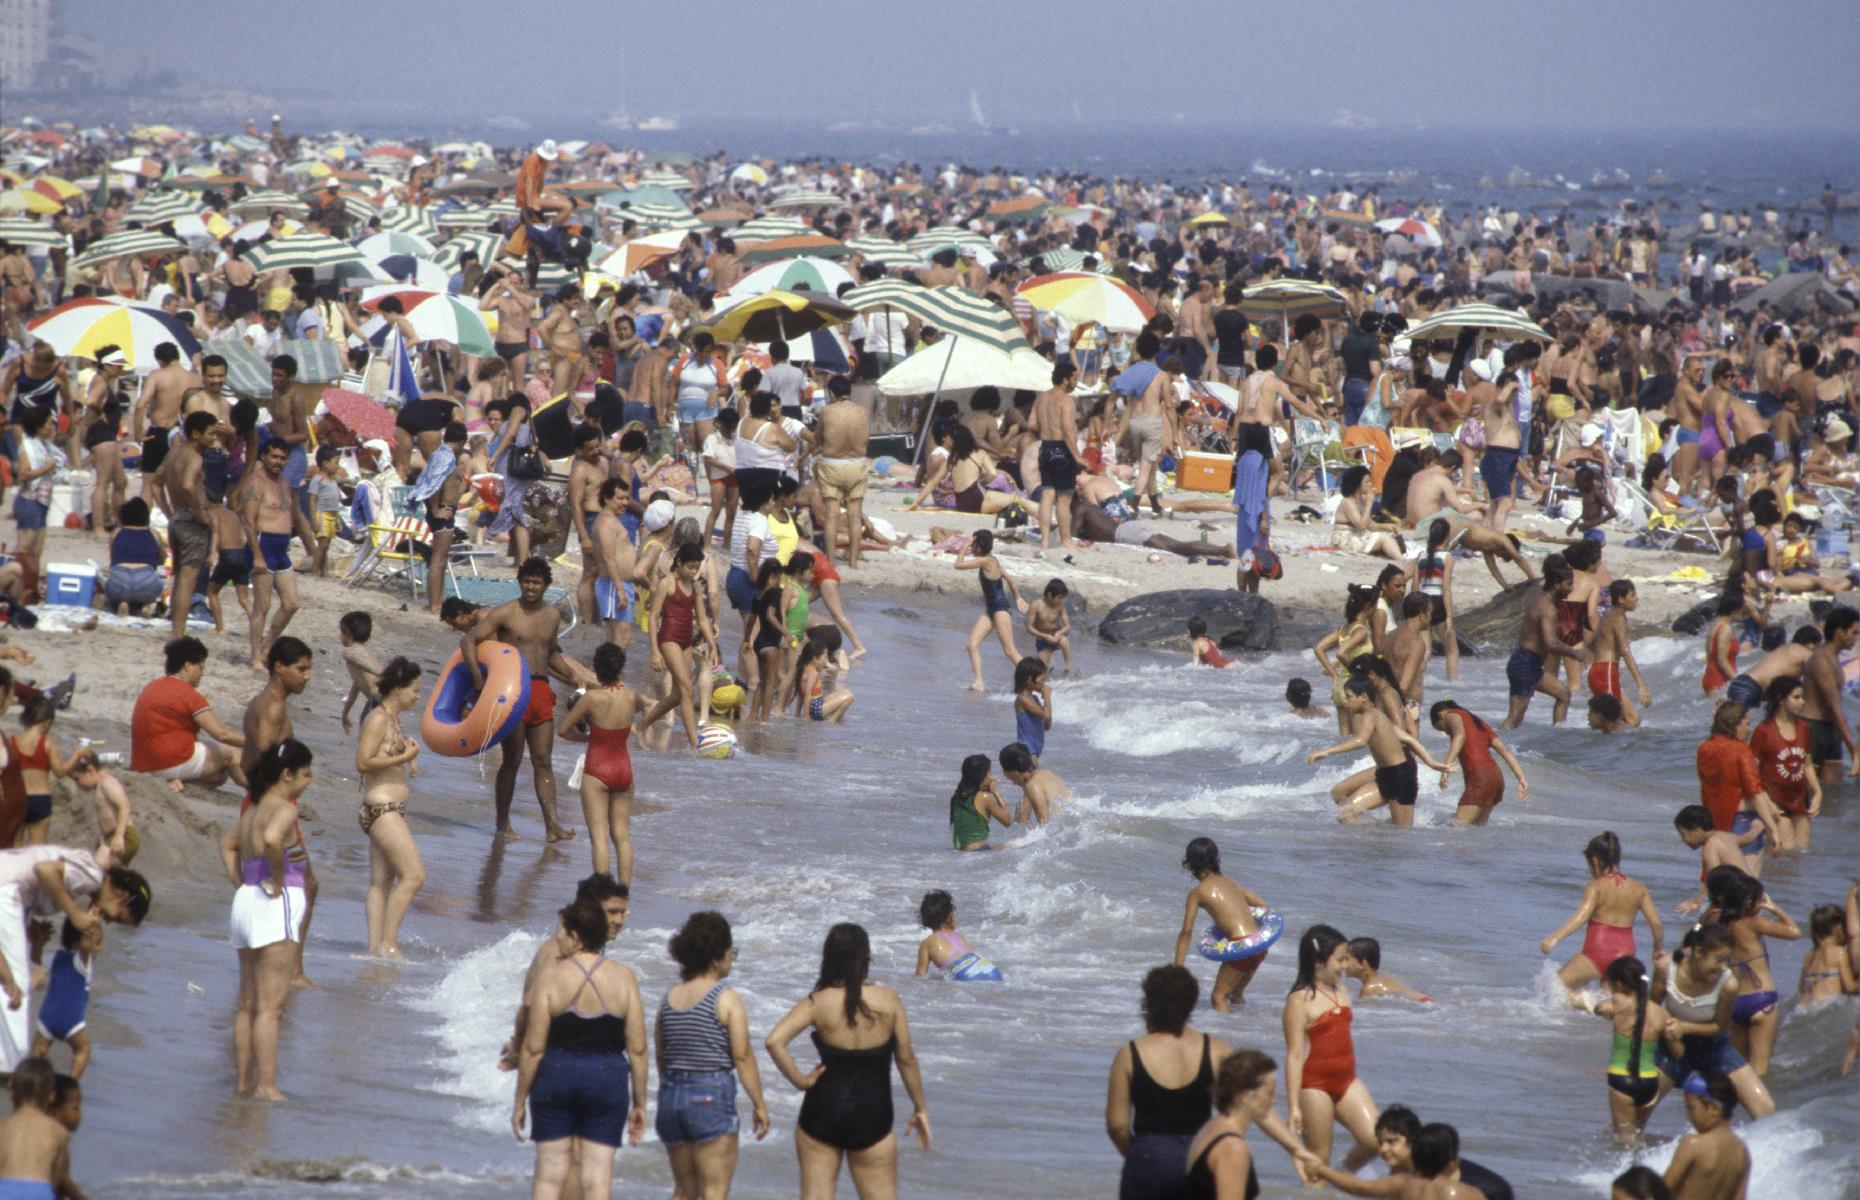 Slide 29 of 38: Back on American soil, the shores were busier than ever too. Here, at the tail end of the decade, Coney Island's sandy strand swarms with people. Rubber rings, umbrellas, beach towels and balls add splashes of color to Brooklyn's humming beach, as families enjoy their vacation time.